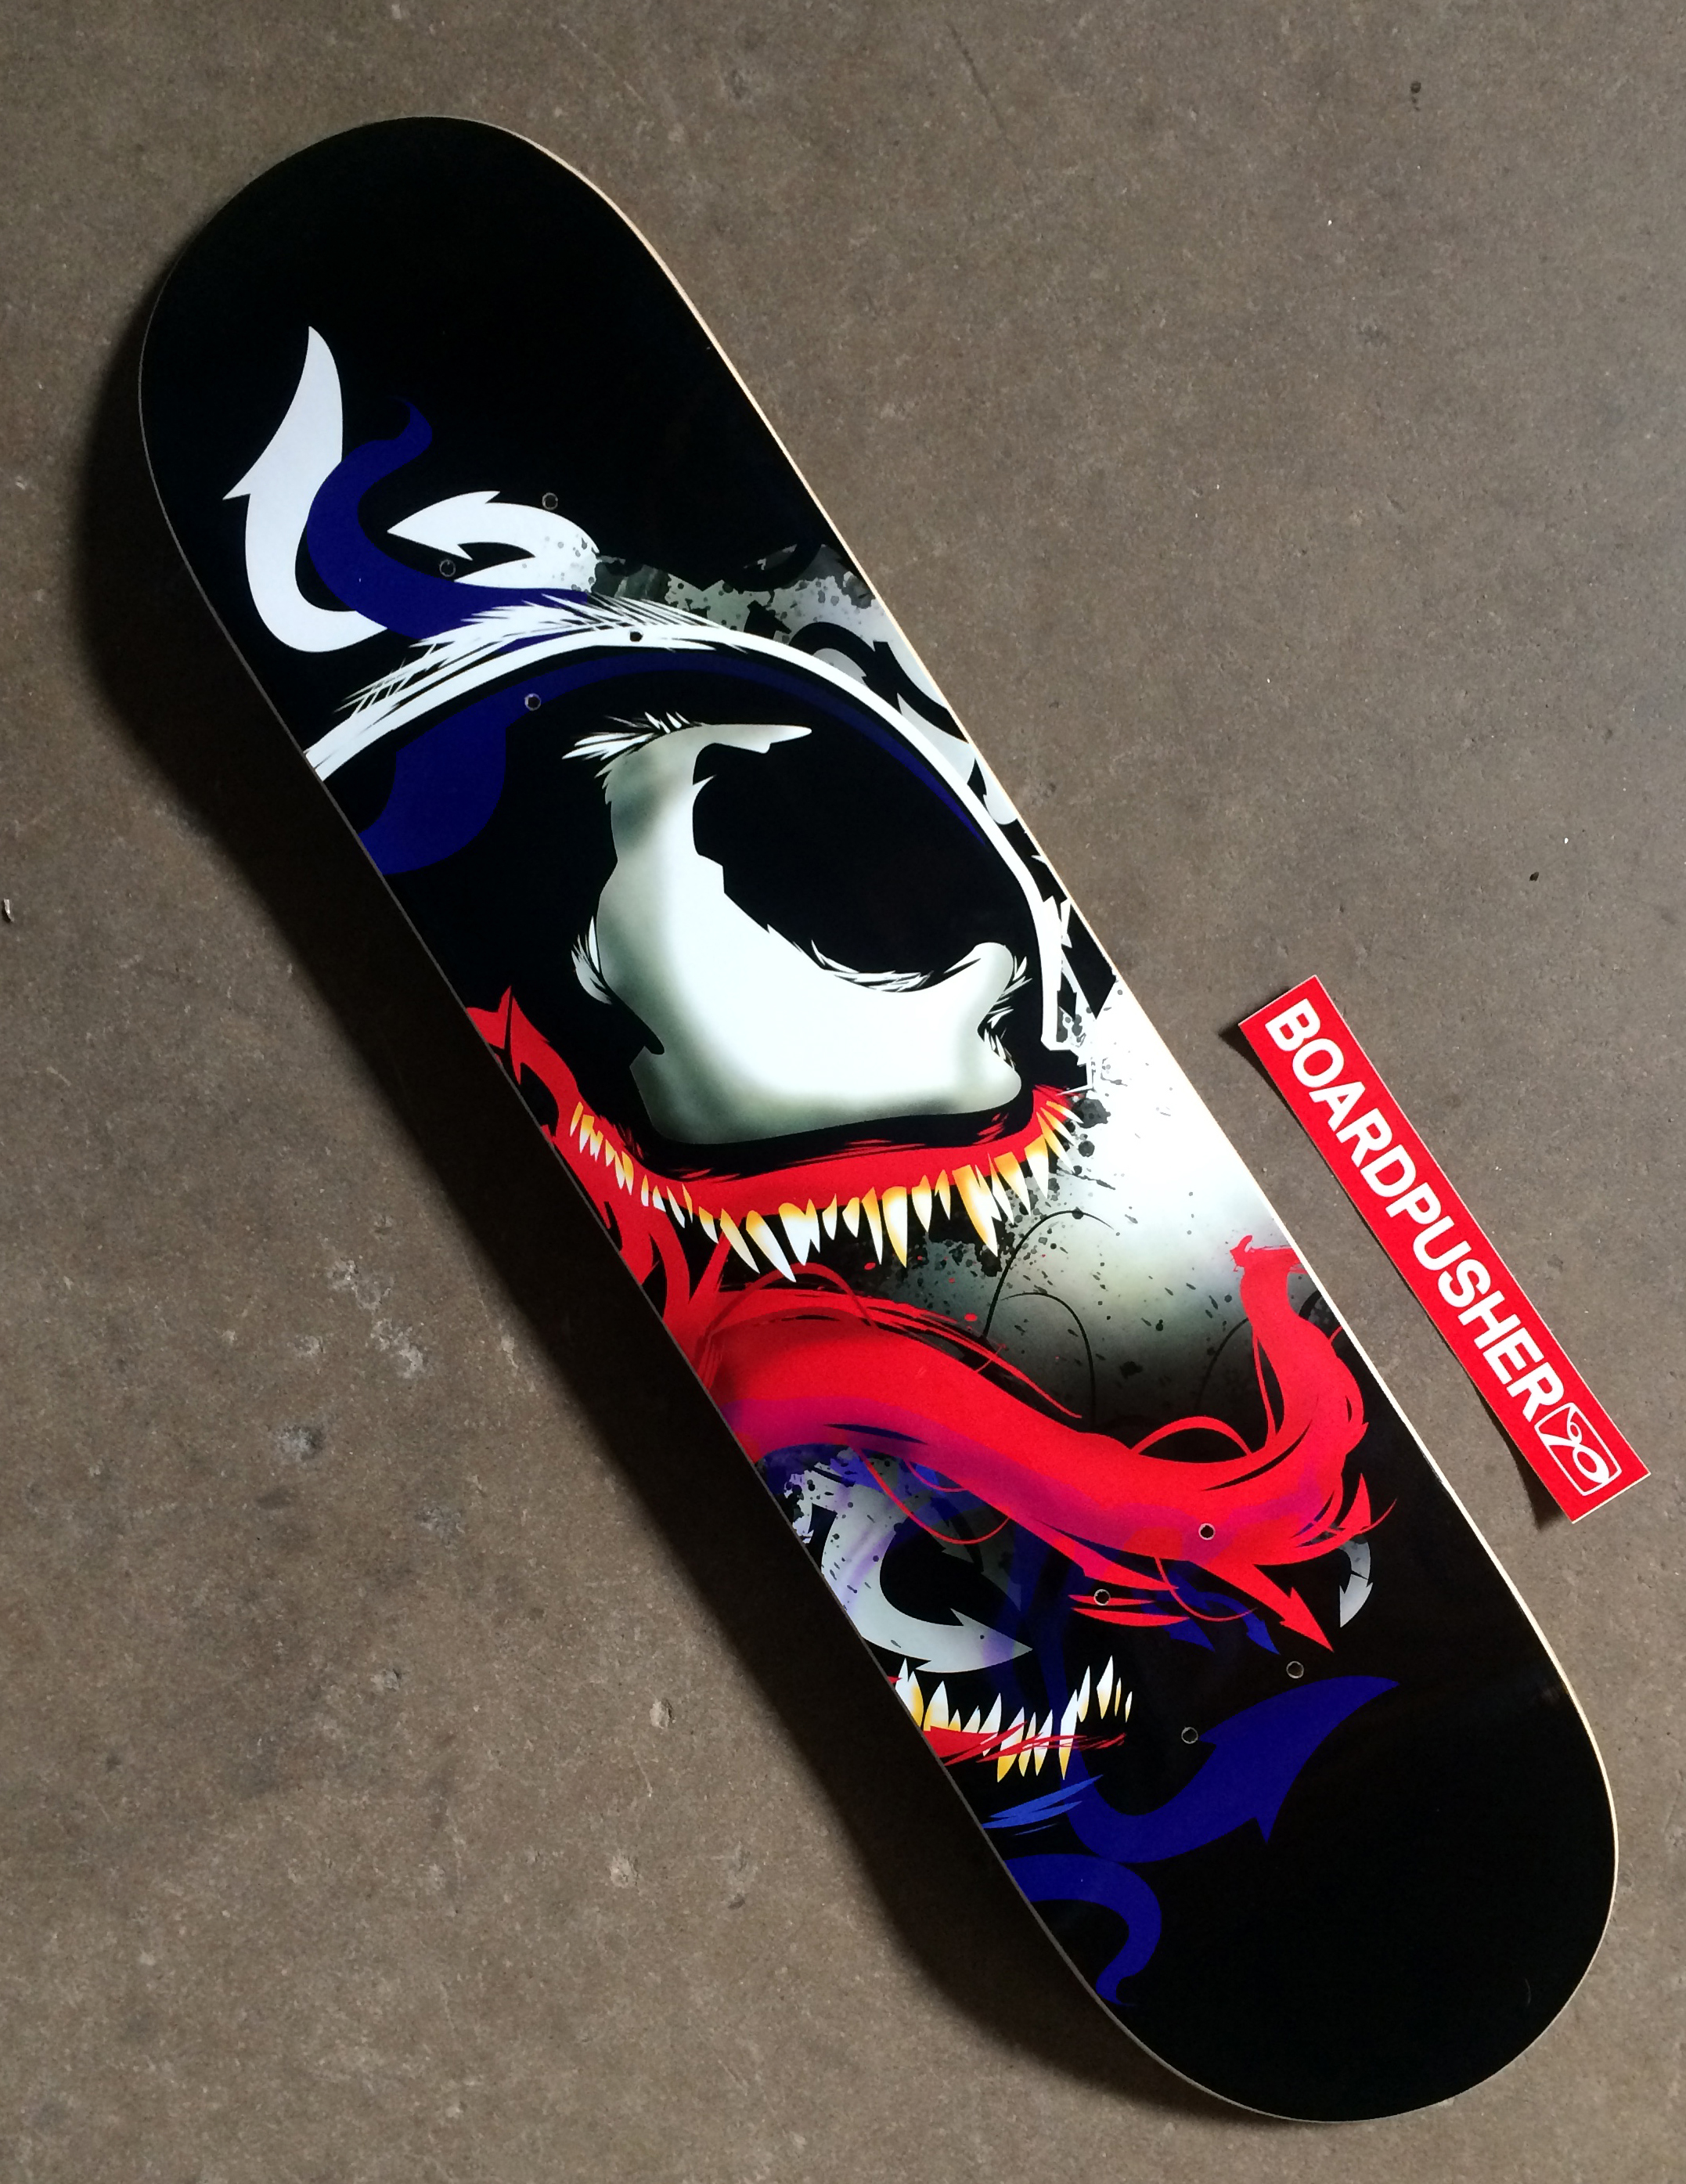 How To Design Skateboard Graphics